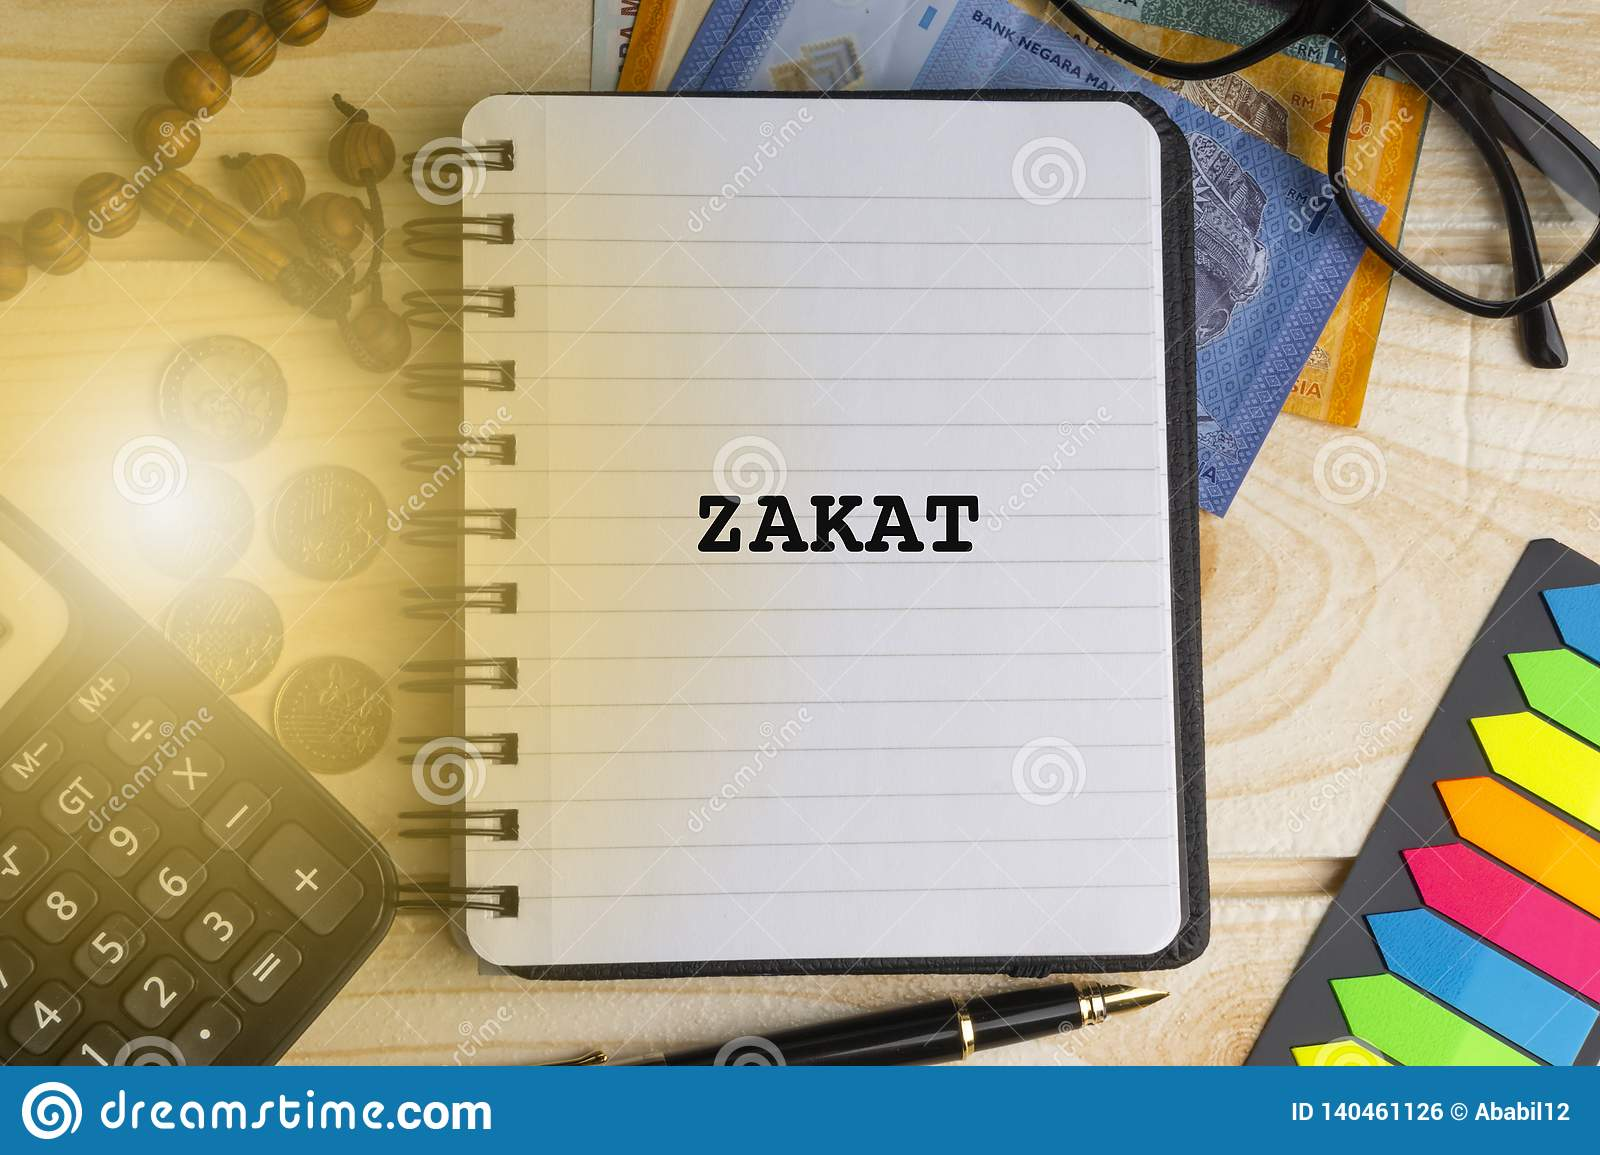 458 zakat photos free royalty free stock photos from dreamstime https www dreamstime com zakat islamic tax inscription written book calculator rosary coins banknotes book eyeglasses pen wooden background image140461126